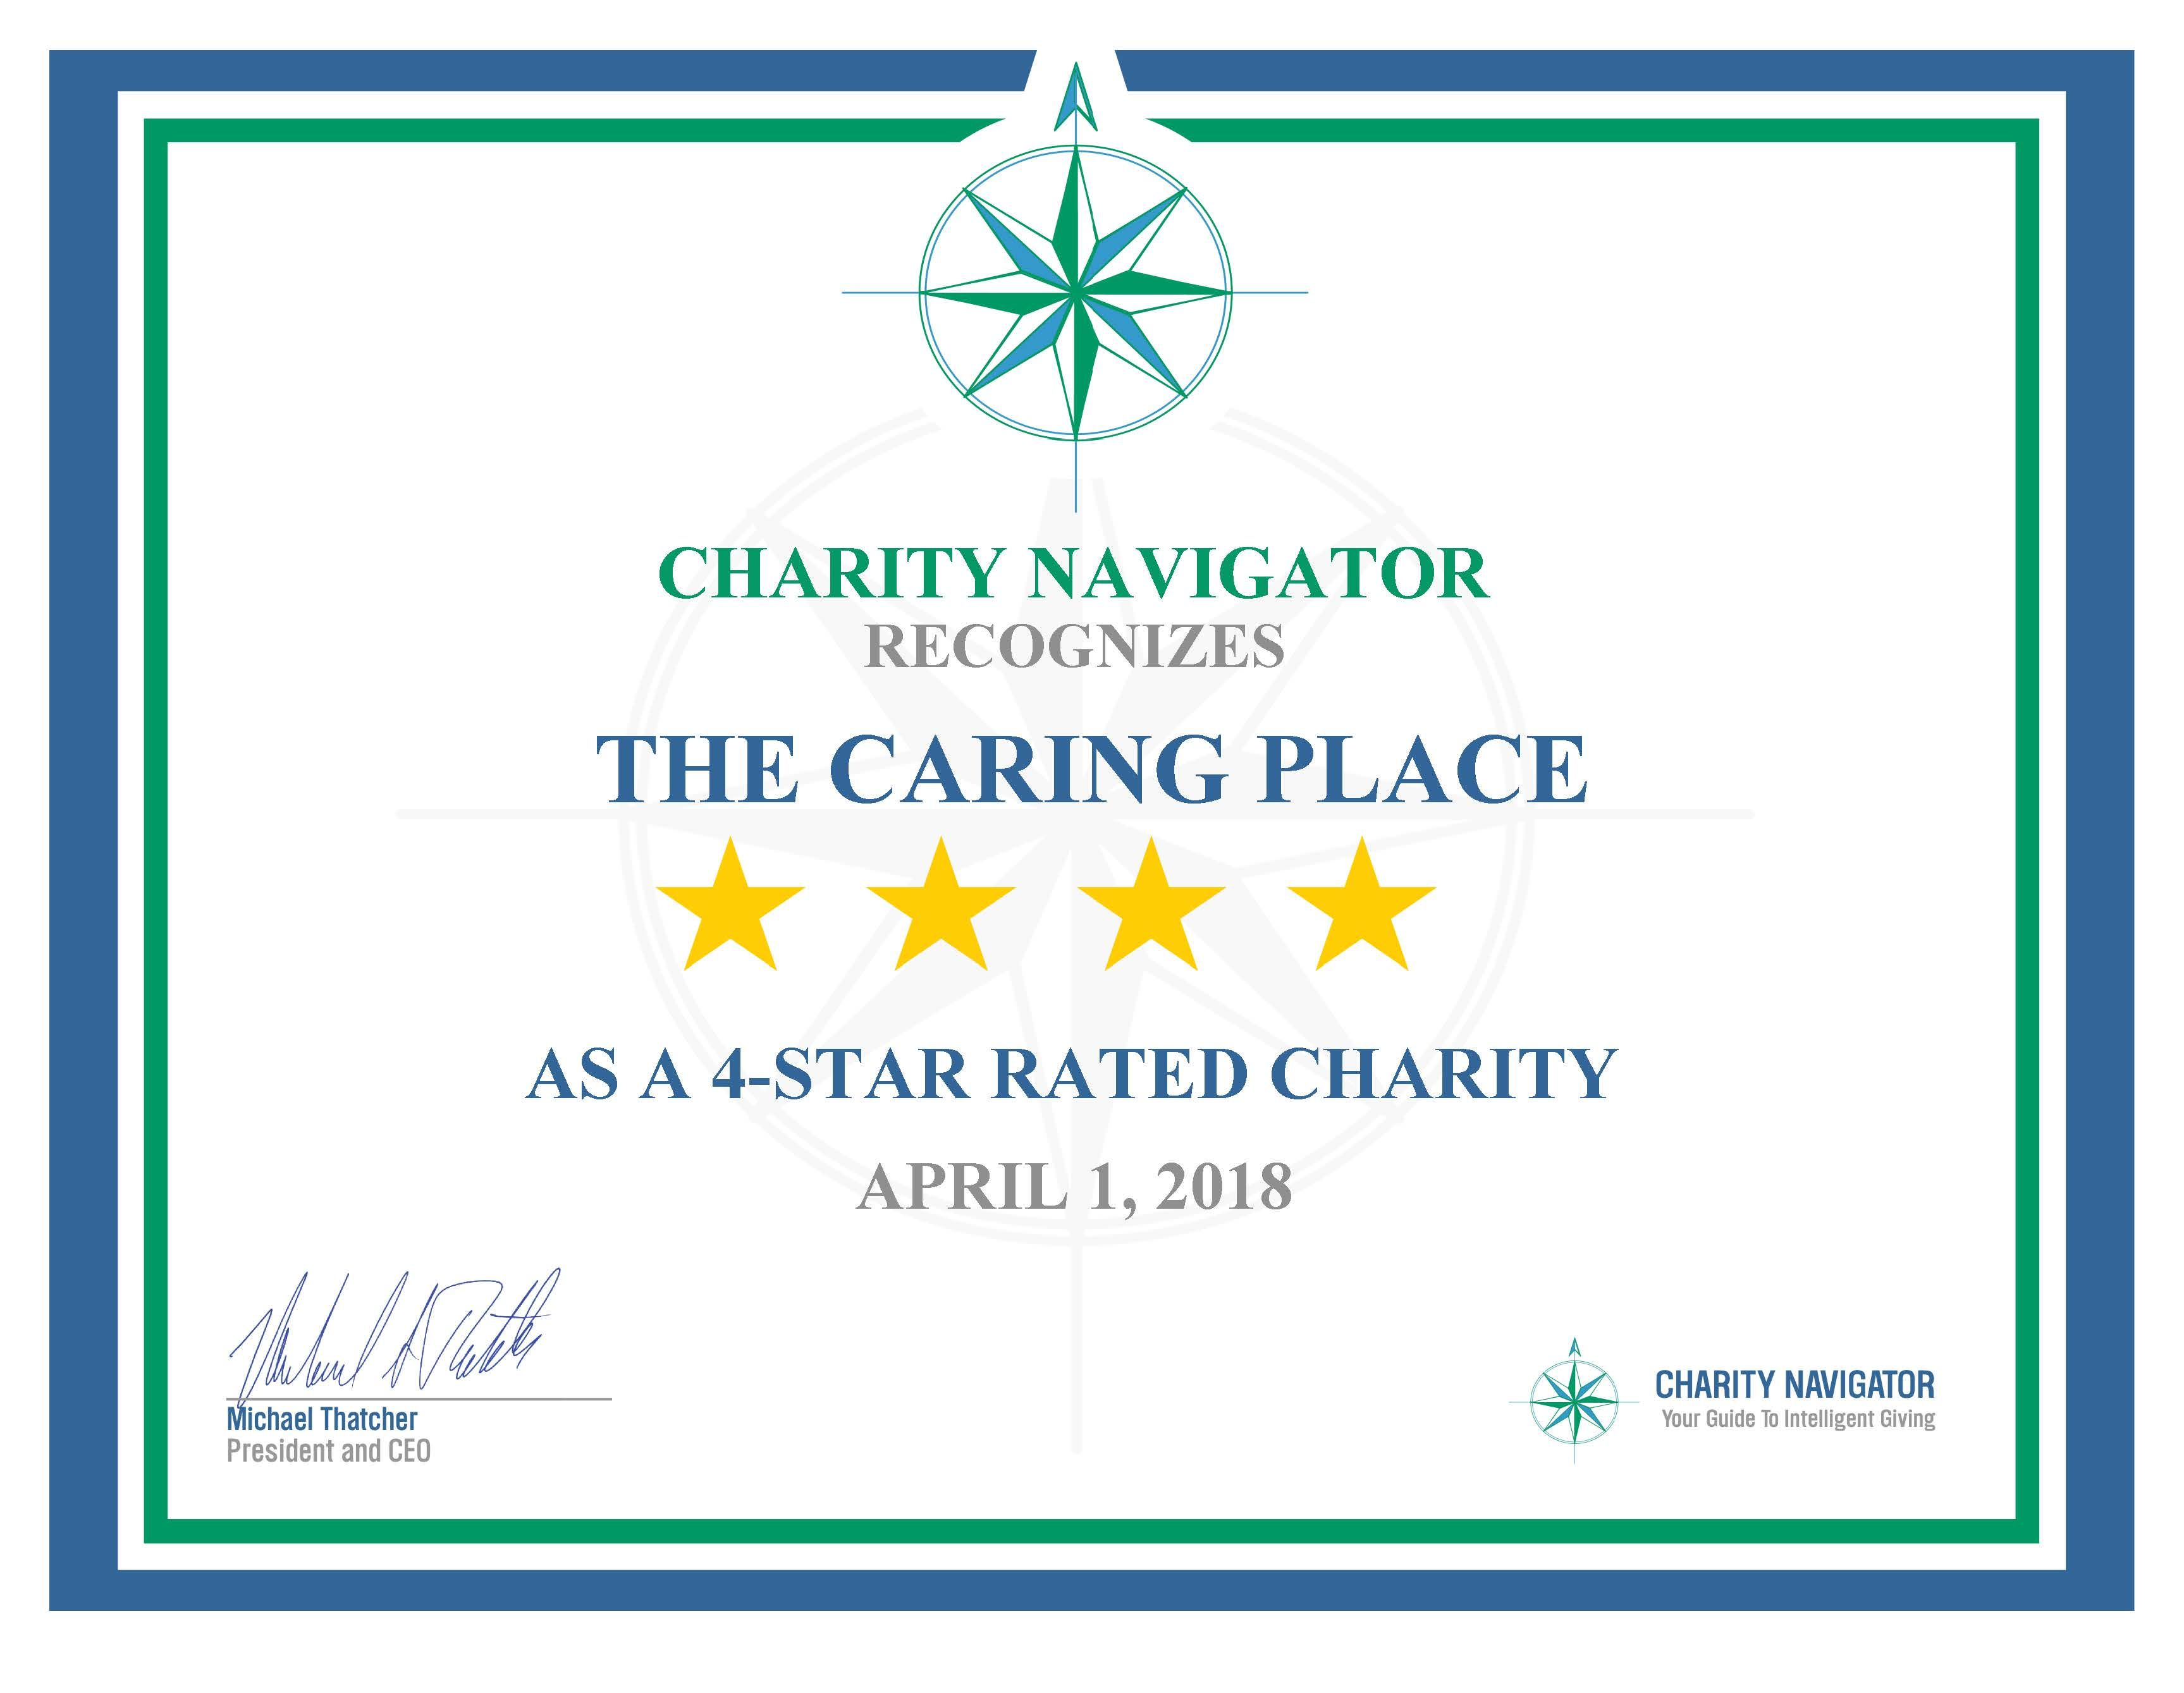 Charity Navigator Awards 4-Star Rating to The Caring Place